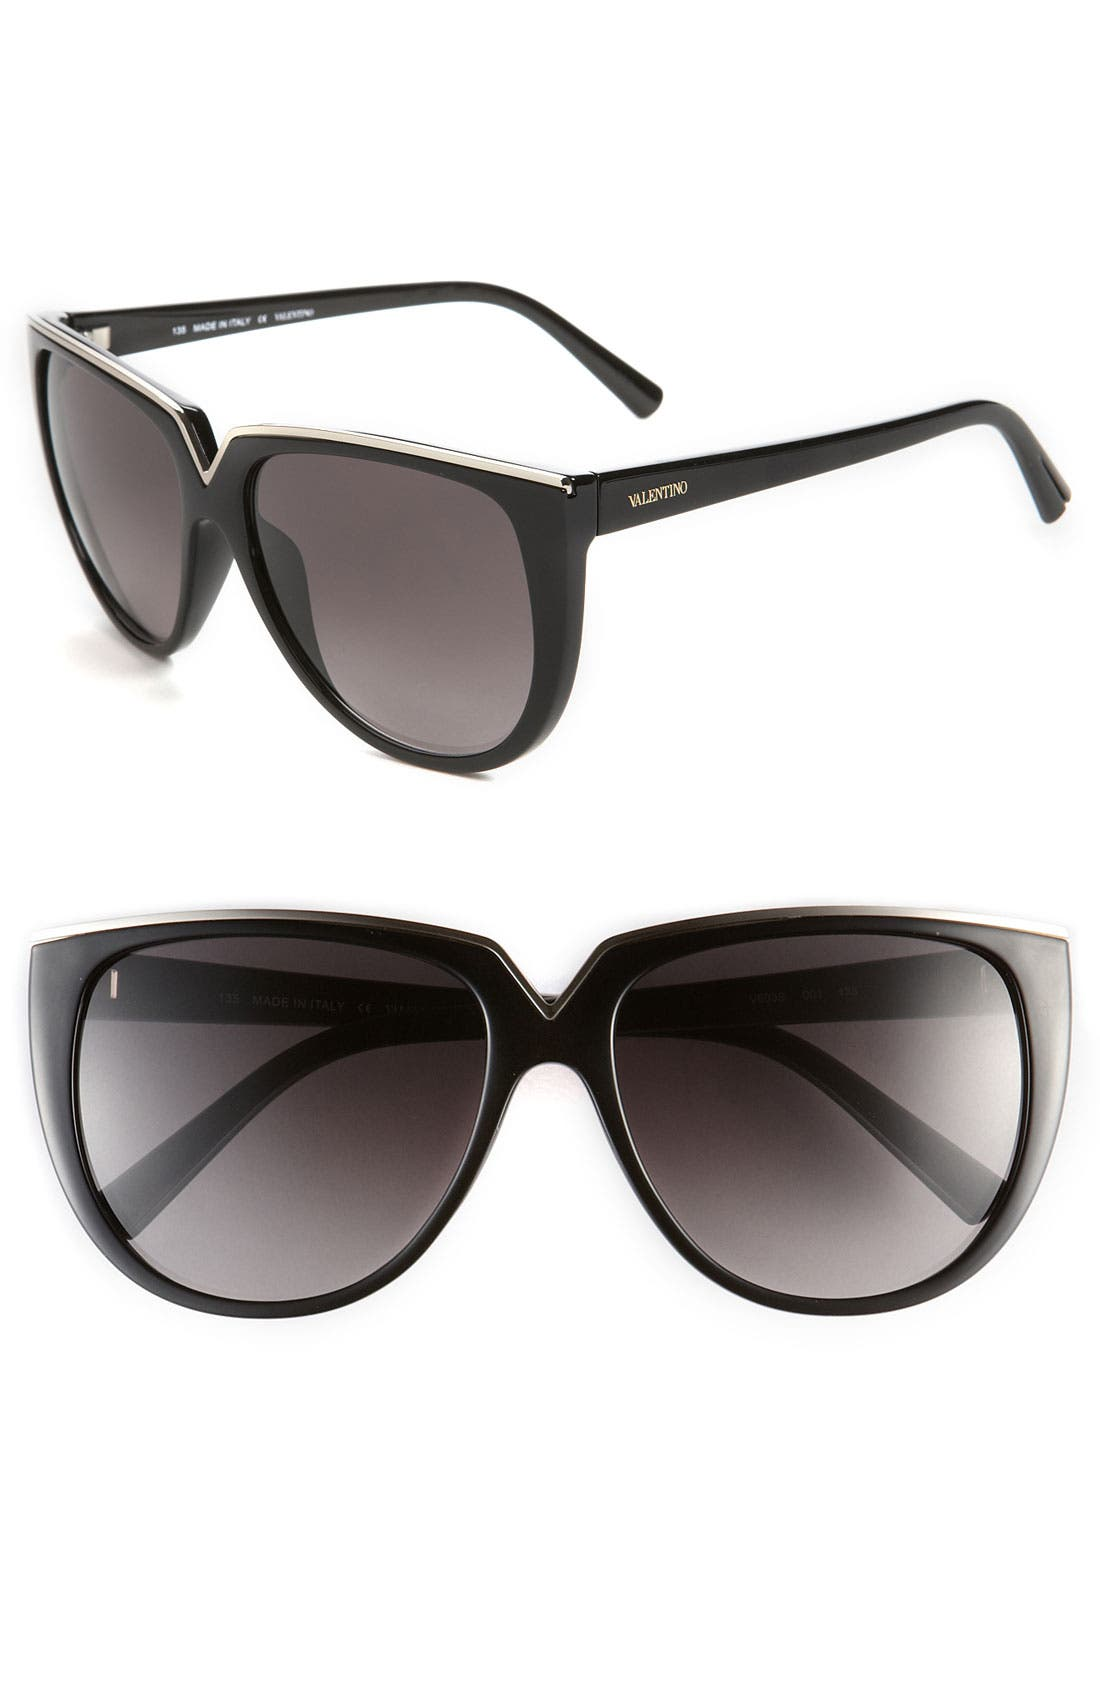 Main Image - Valentino 57mm Retro Sunglasses